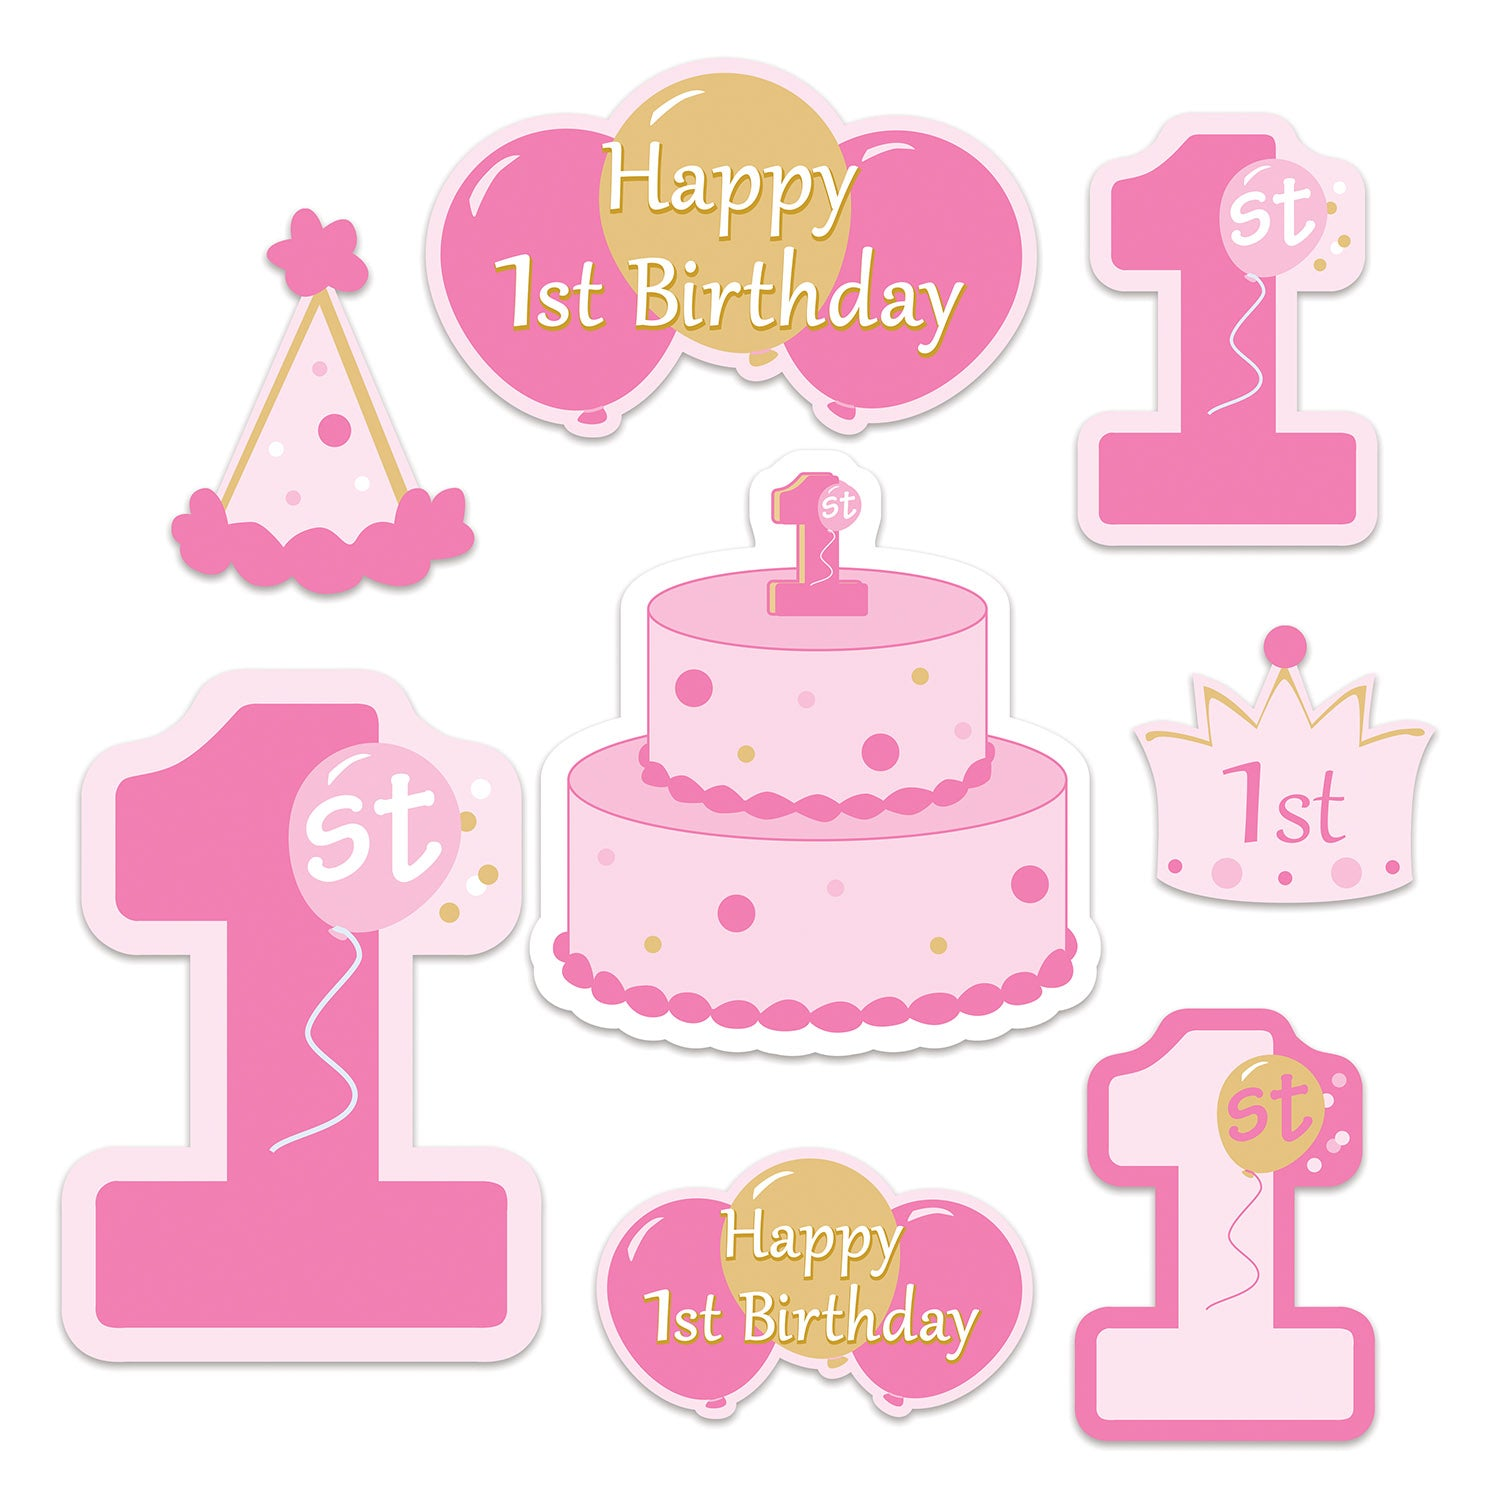 1st Birthday Cutouts (8/Pkg) by Beistle - 1st Birthday Party Decorations